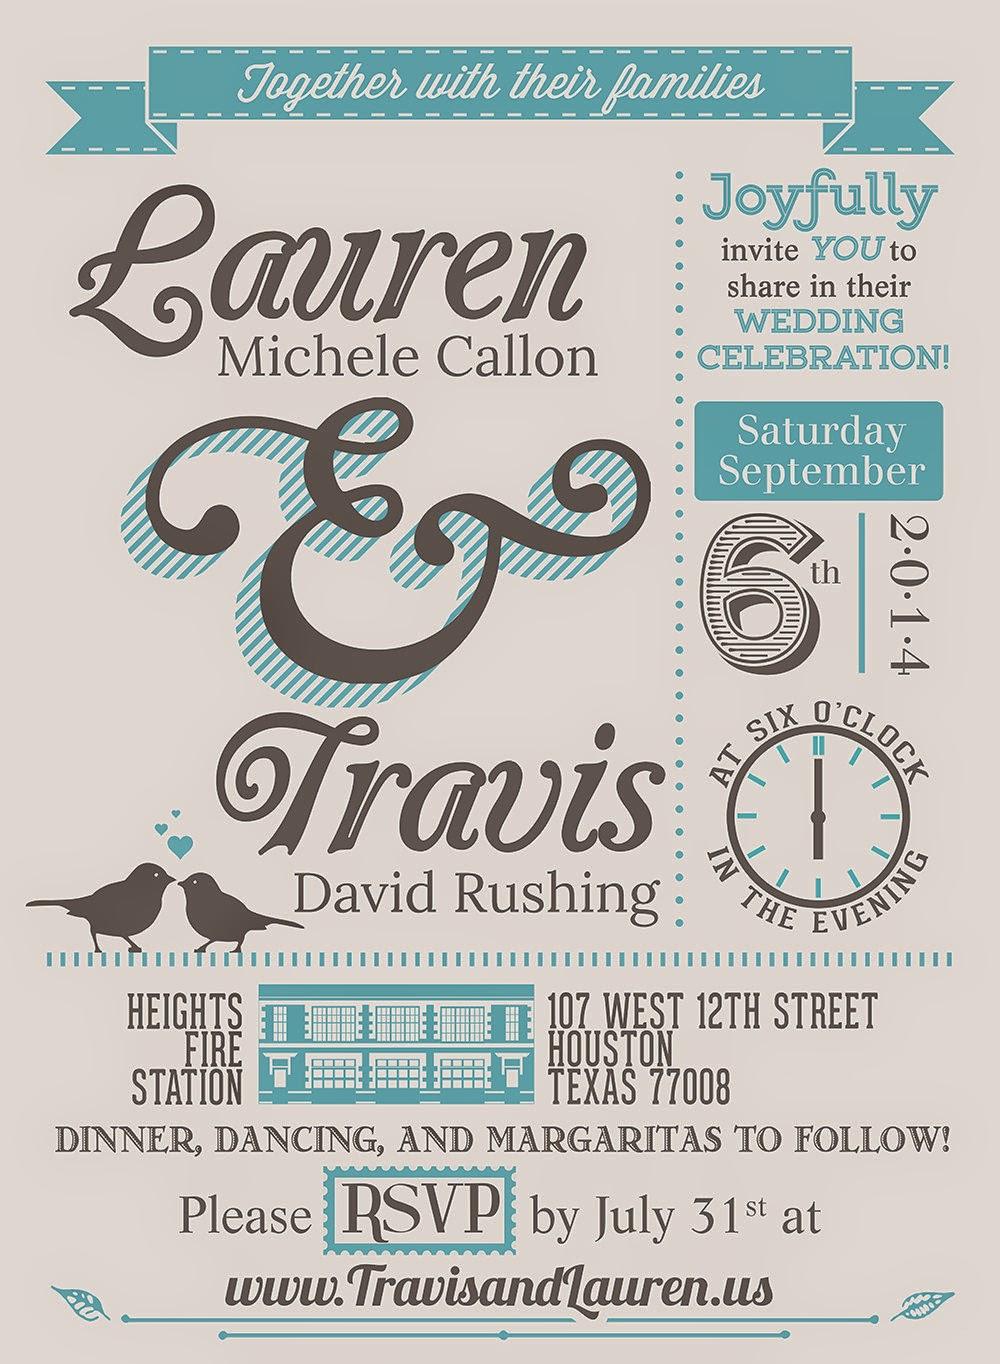 https://www.etsy.com/listing/216791905/wedding-invitation-template-with-custom?ref=sr_gallery_36&ga_search_query=wedding+invitation+templates&ga_search_type=all&ga_view_type=gallery